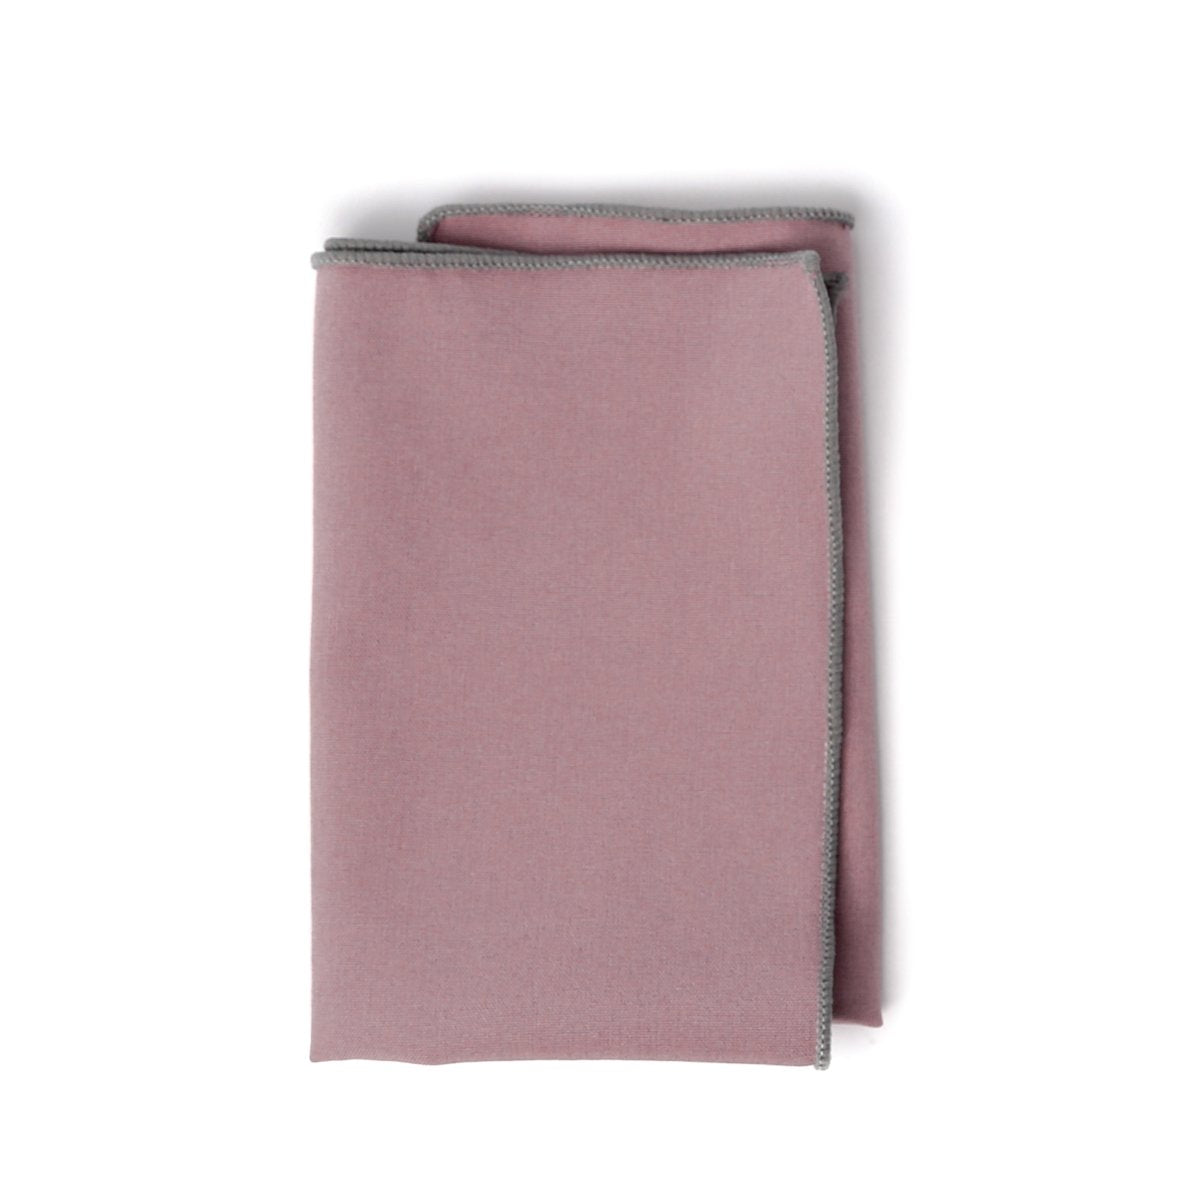 Mauve with Gray Stitch Pocket Square